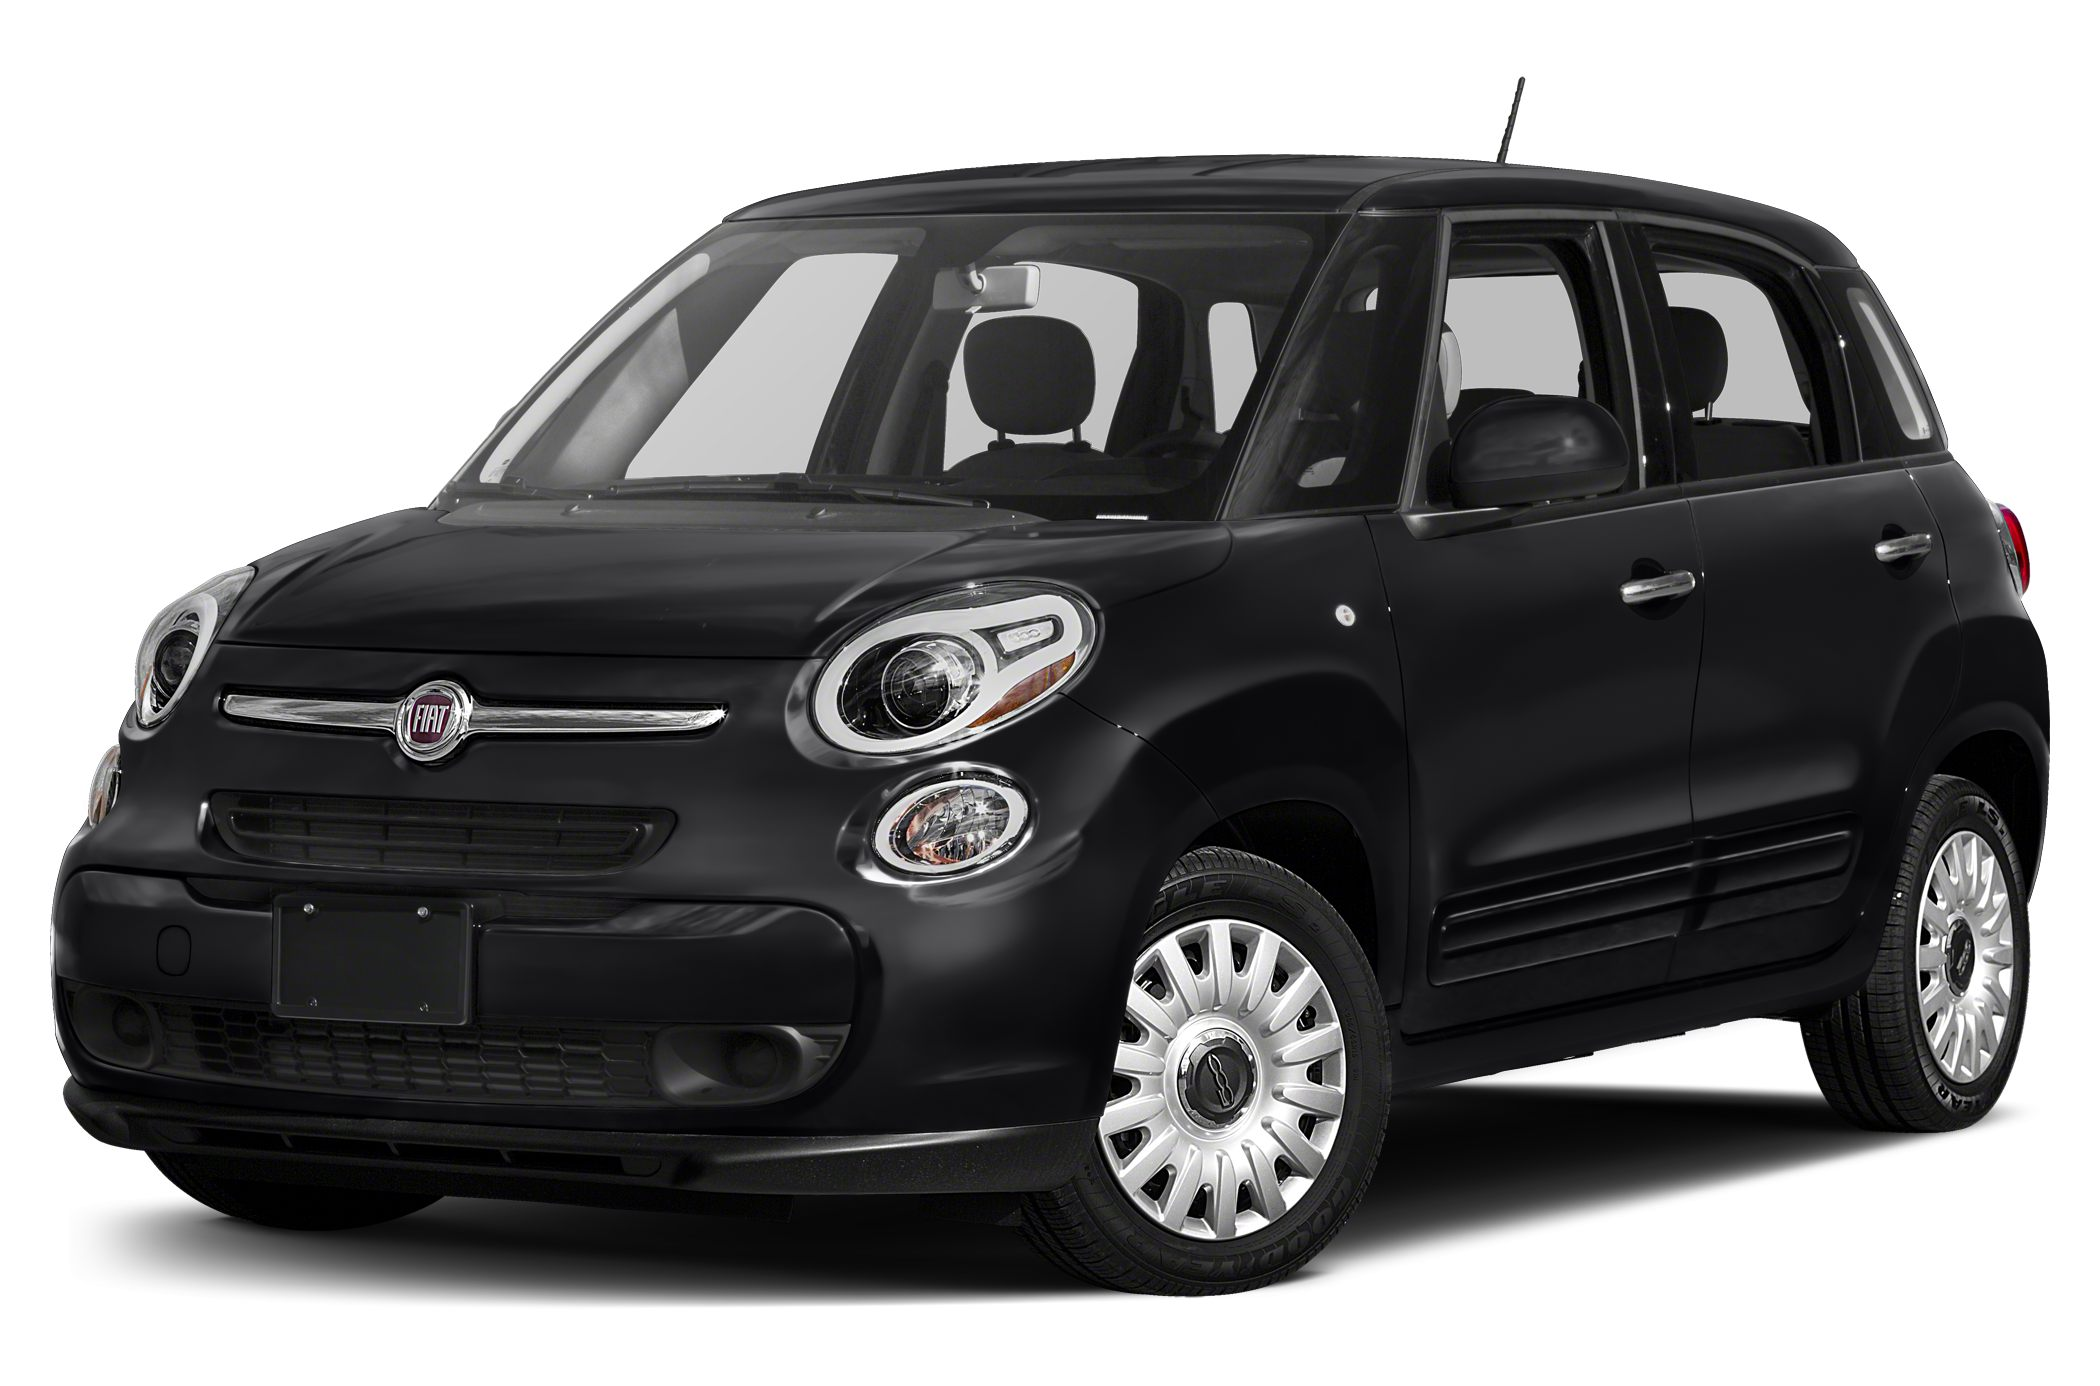 Fiat 500l News Photos And Buying Information Autoblog